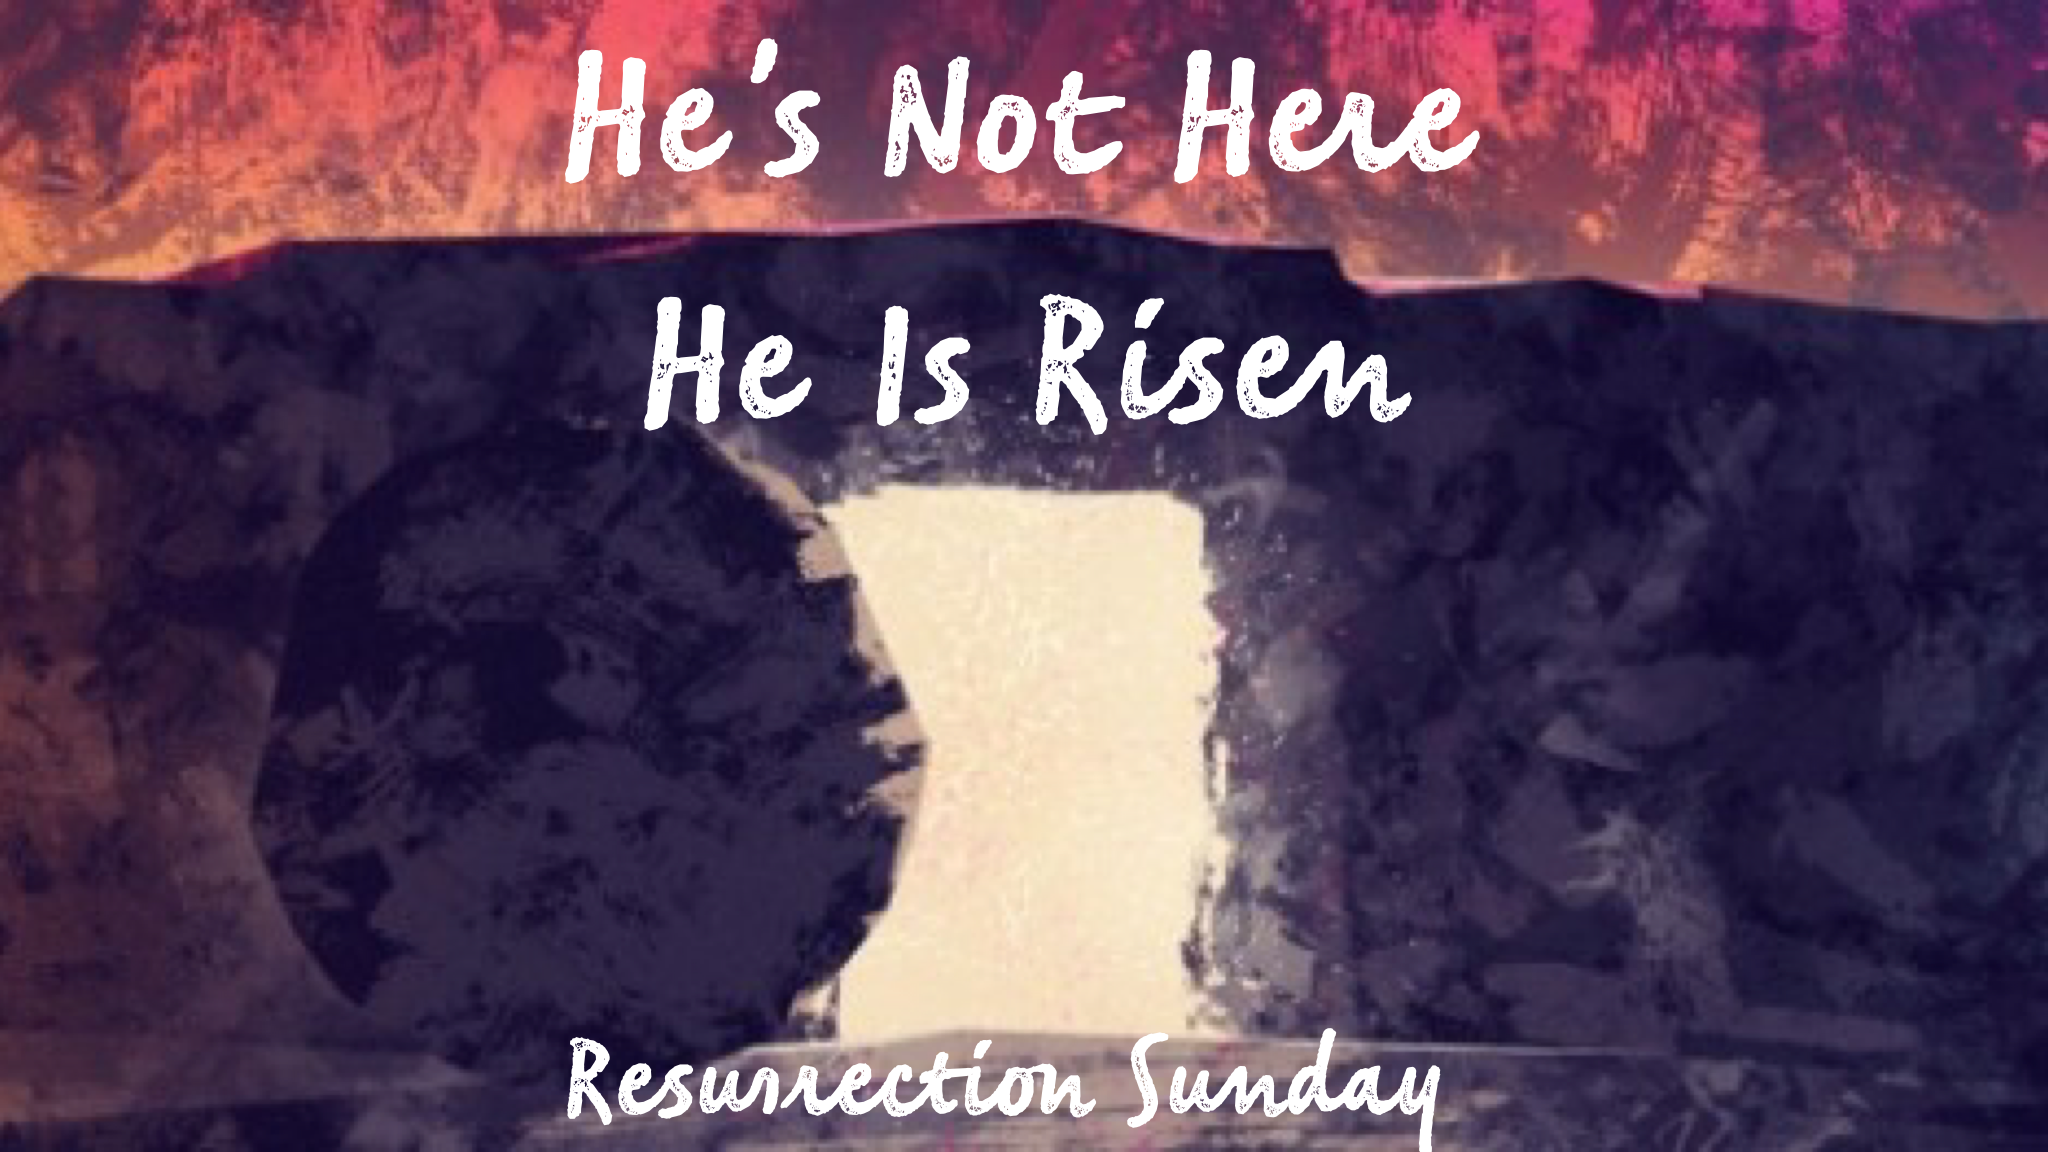 HE IS NOT HERE-HE IS RISEN